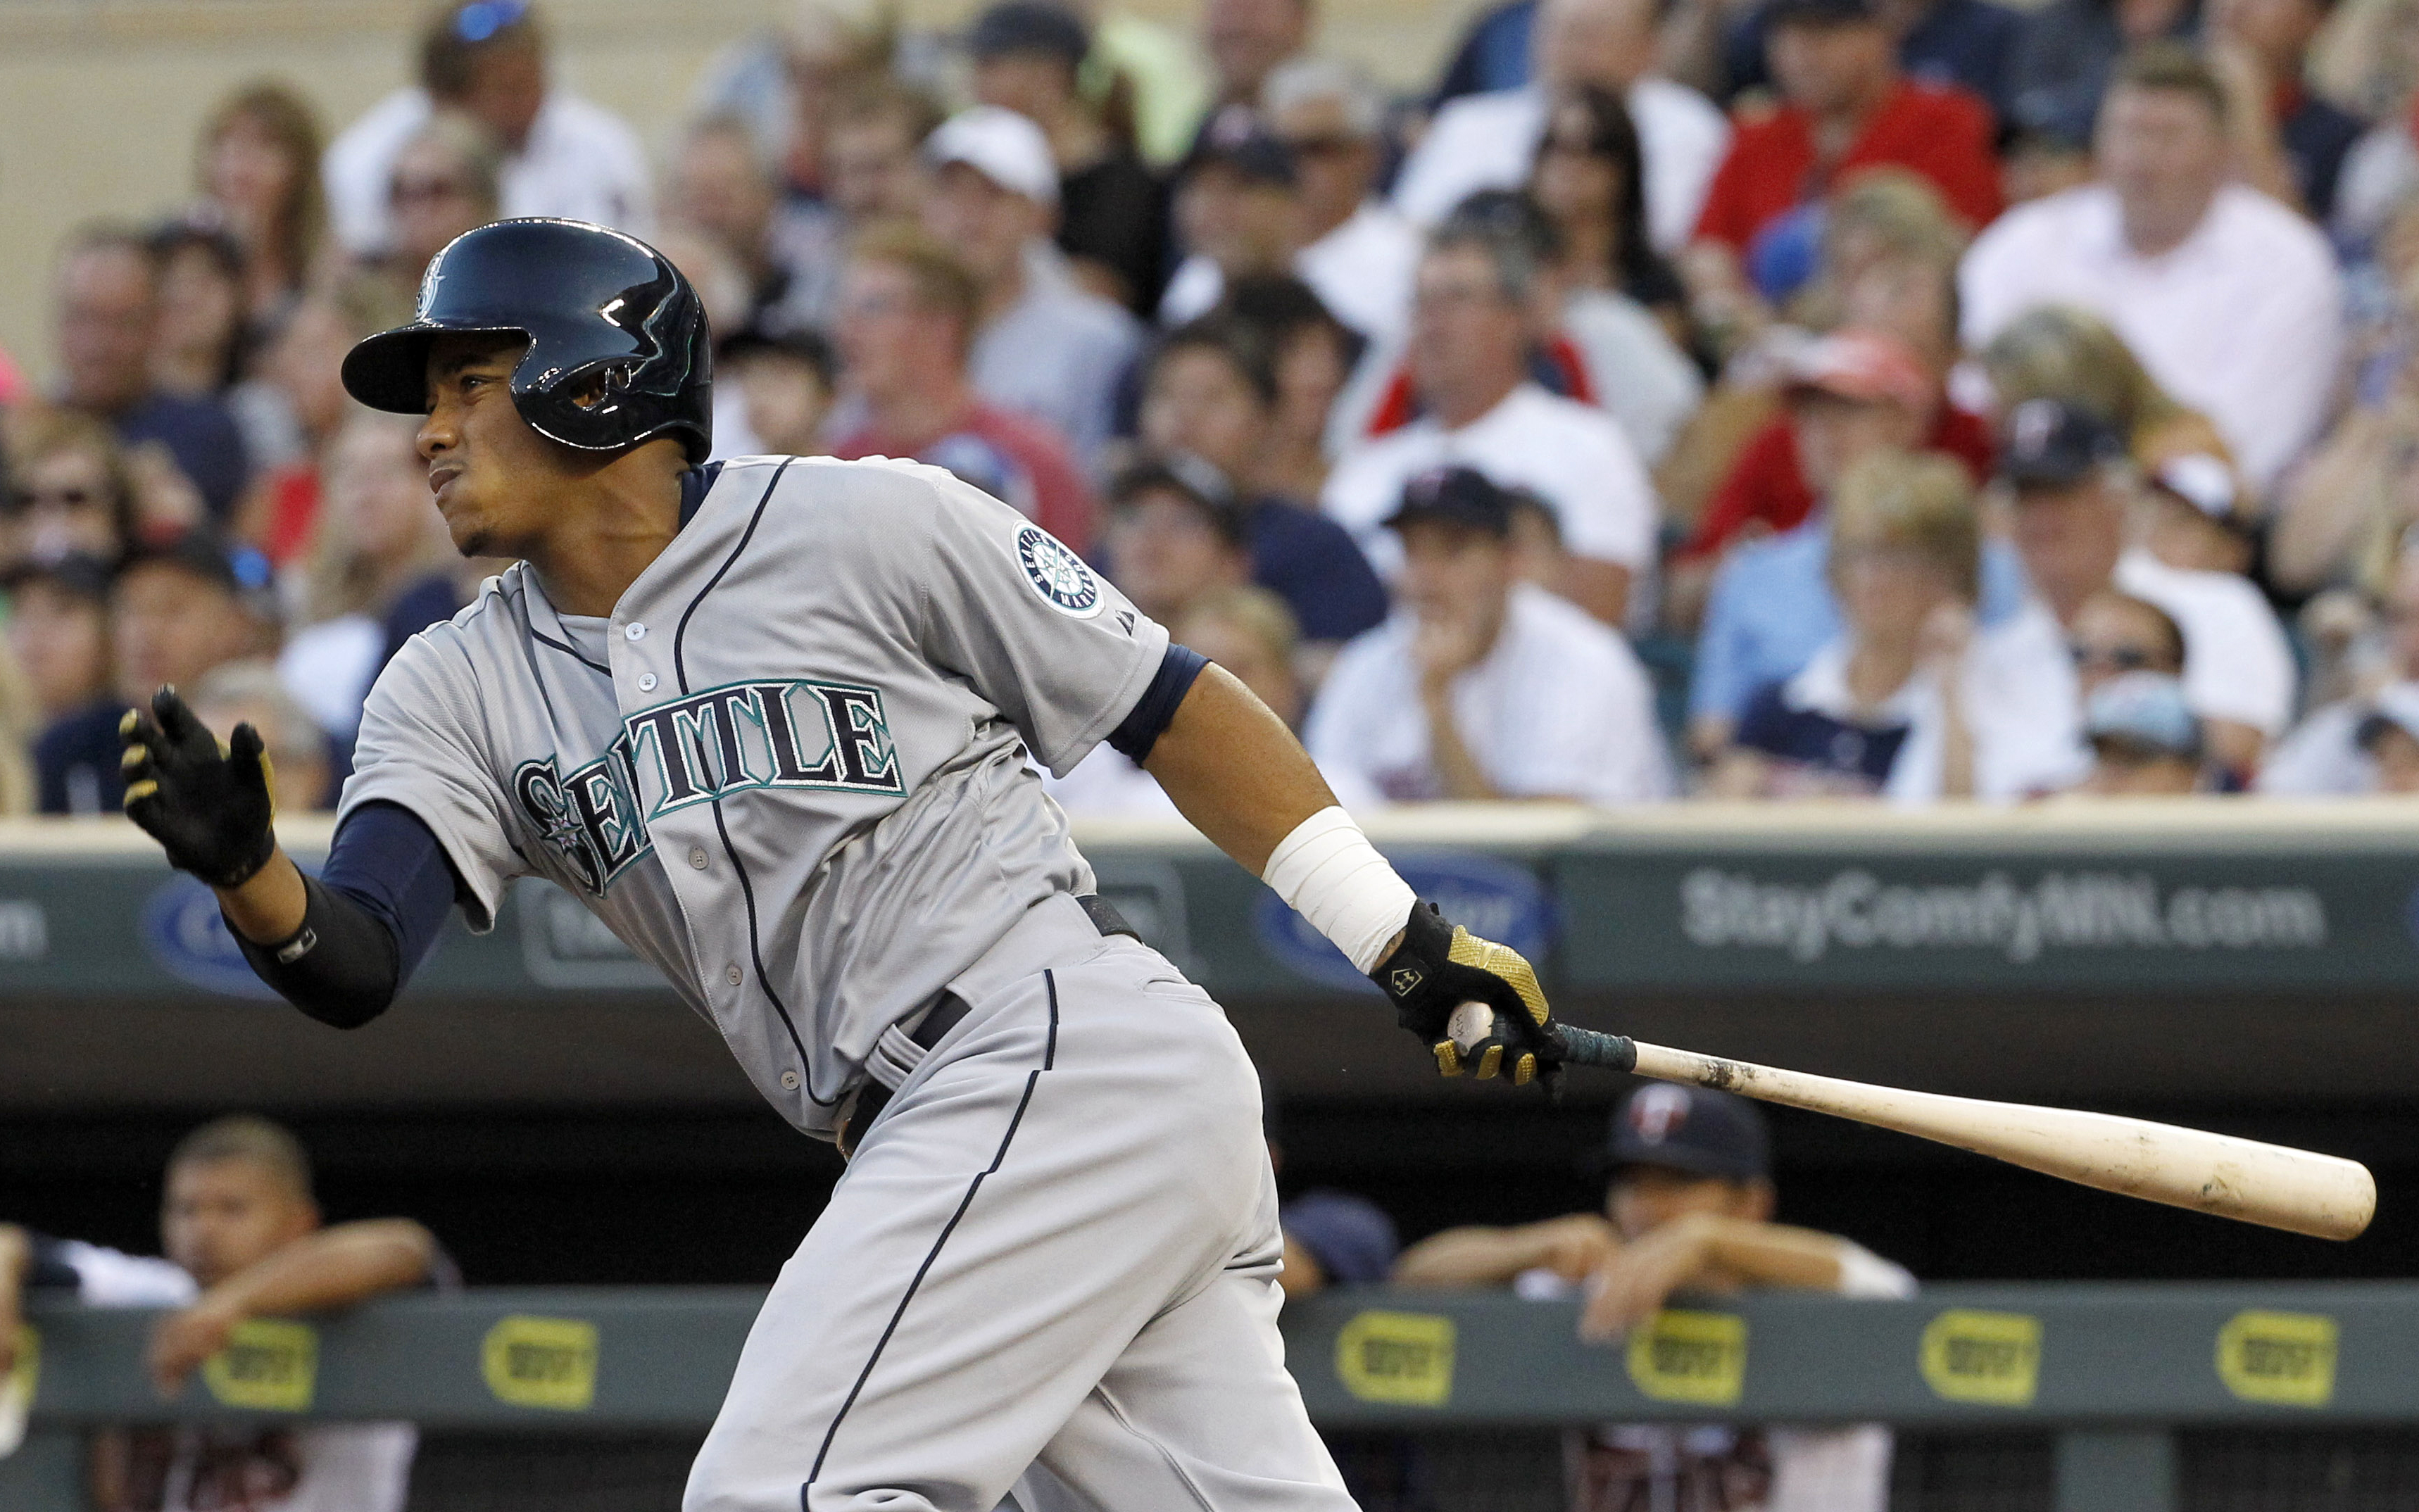 Seattle Mariners' Ketel Marte grounds out to Minnesota Twins shortstop Jorge Polanco during the fourth inning of a baseball game in Minneapolis, Friday, July 31, 2015. The Mariners won 6-1. (AP Photo/Ann Heisenfelt)